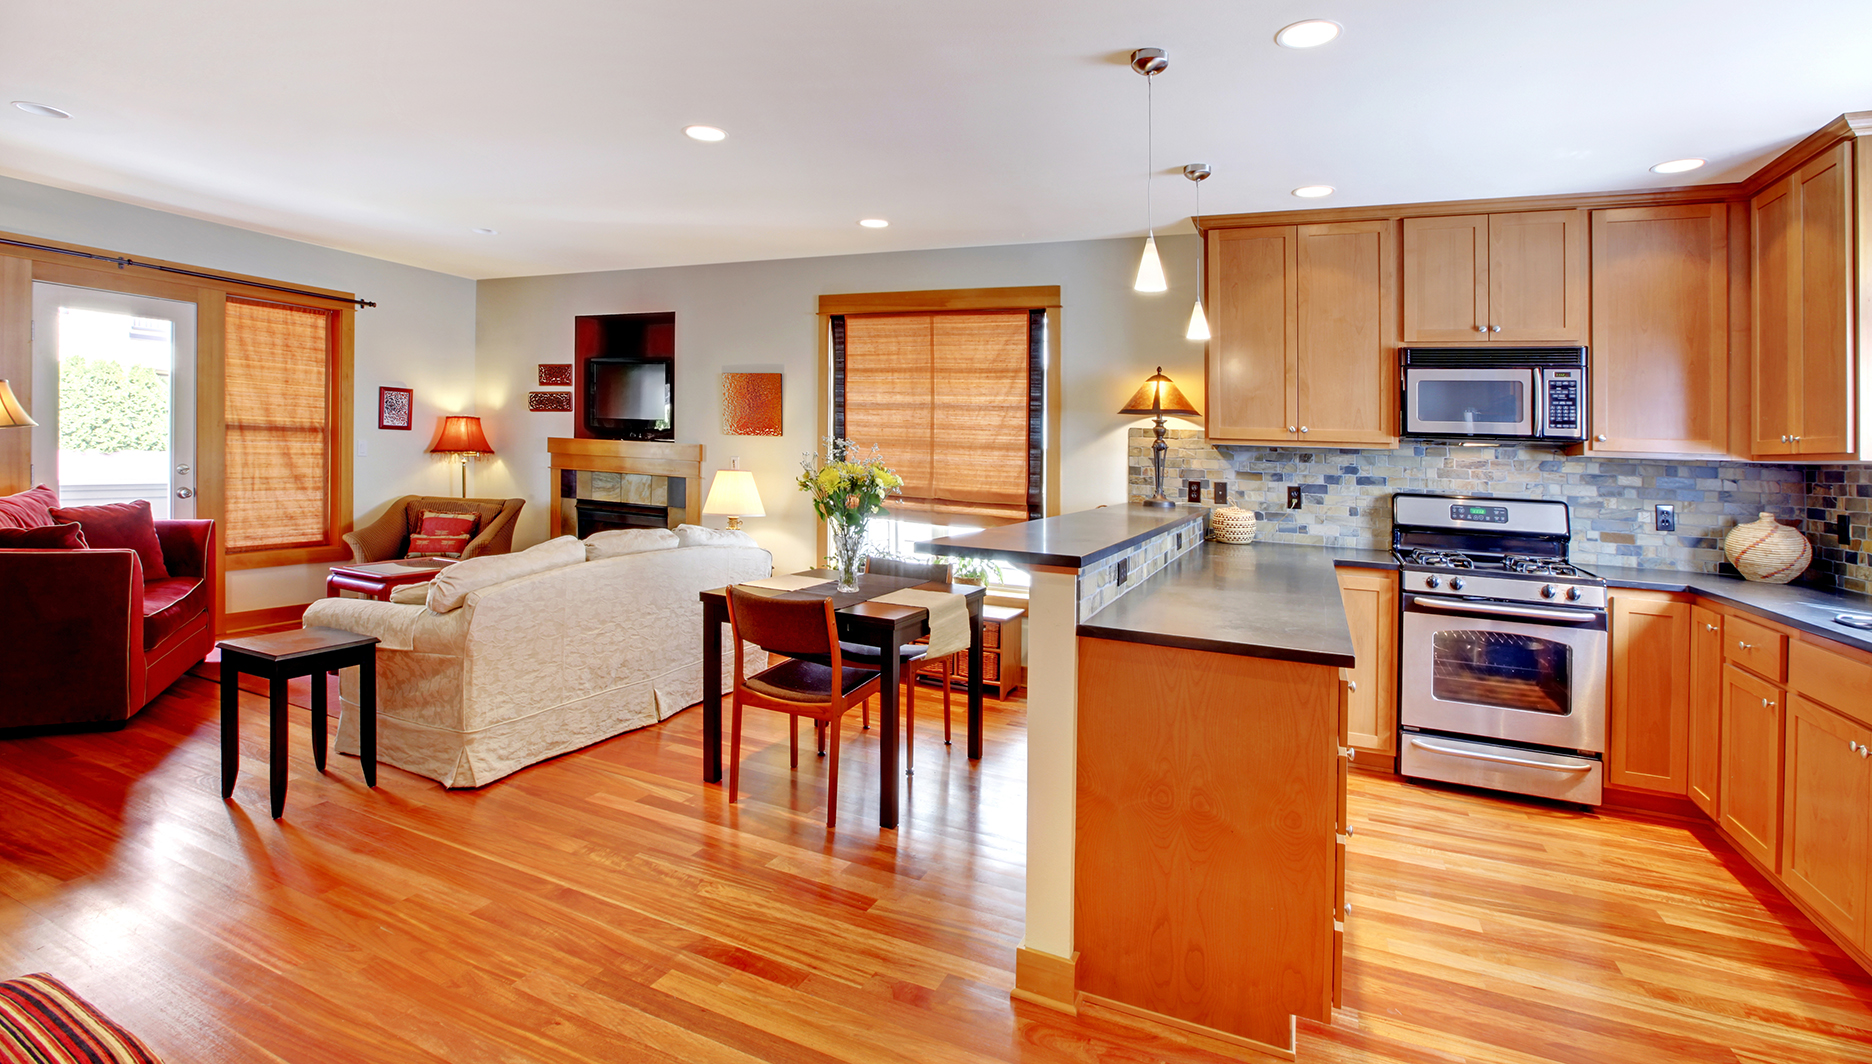 The Rising Trend: Open Floor Plans For Spacious Living